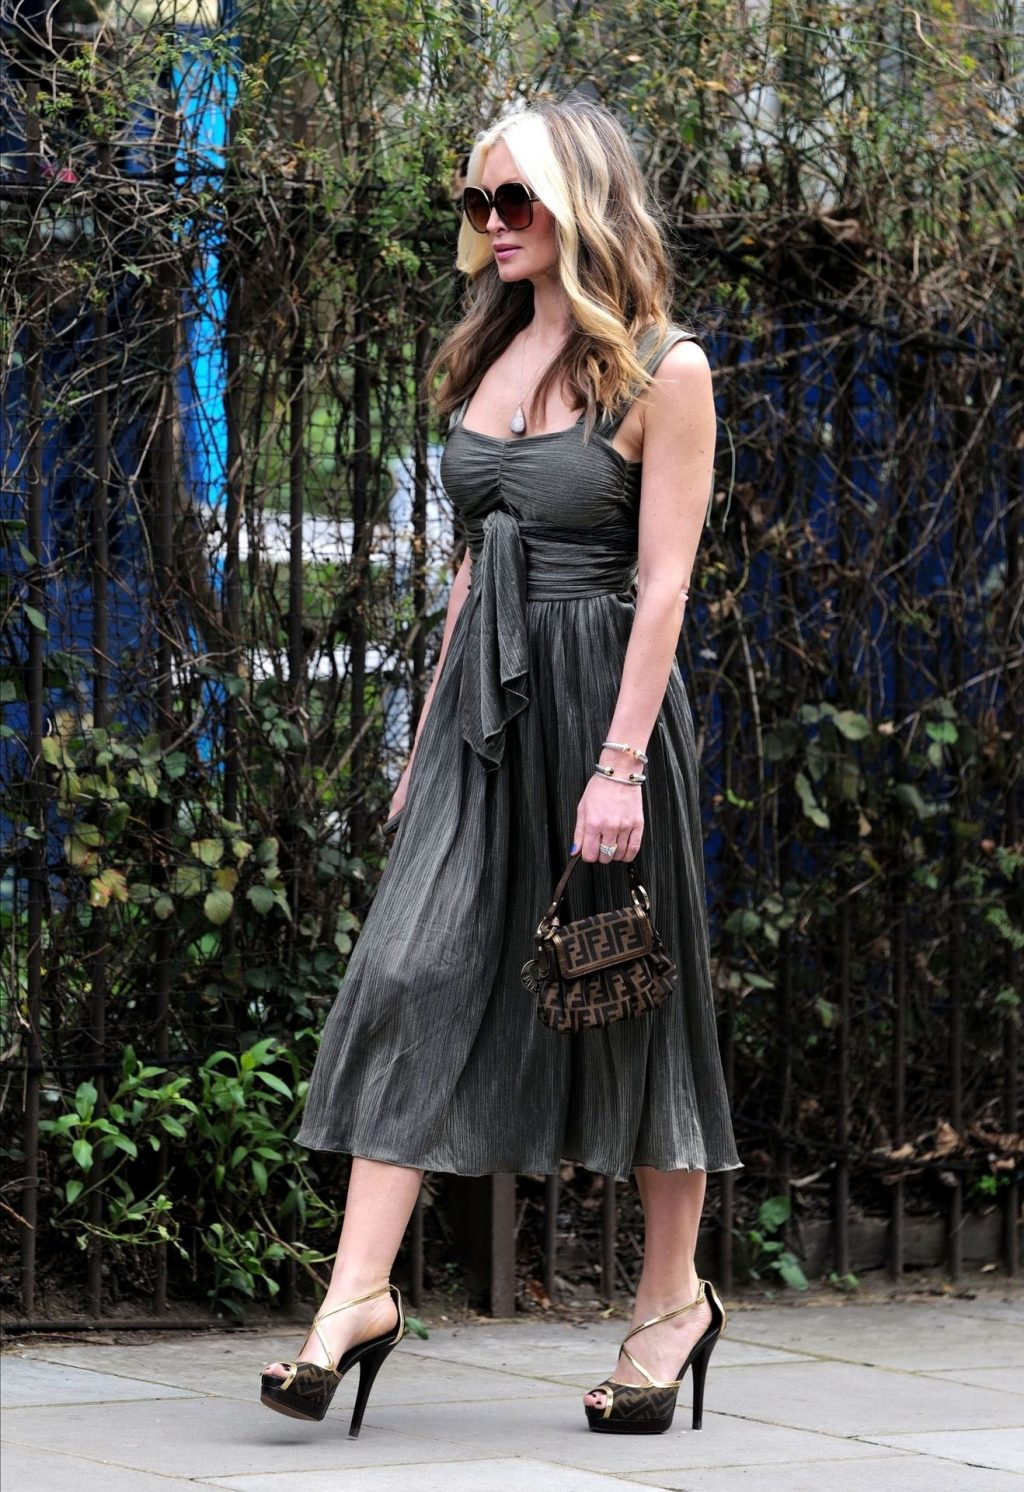 Caprice Bourret Steps Out Looking Glamorous in London (29 Photos)